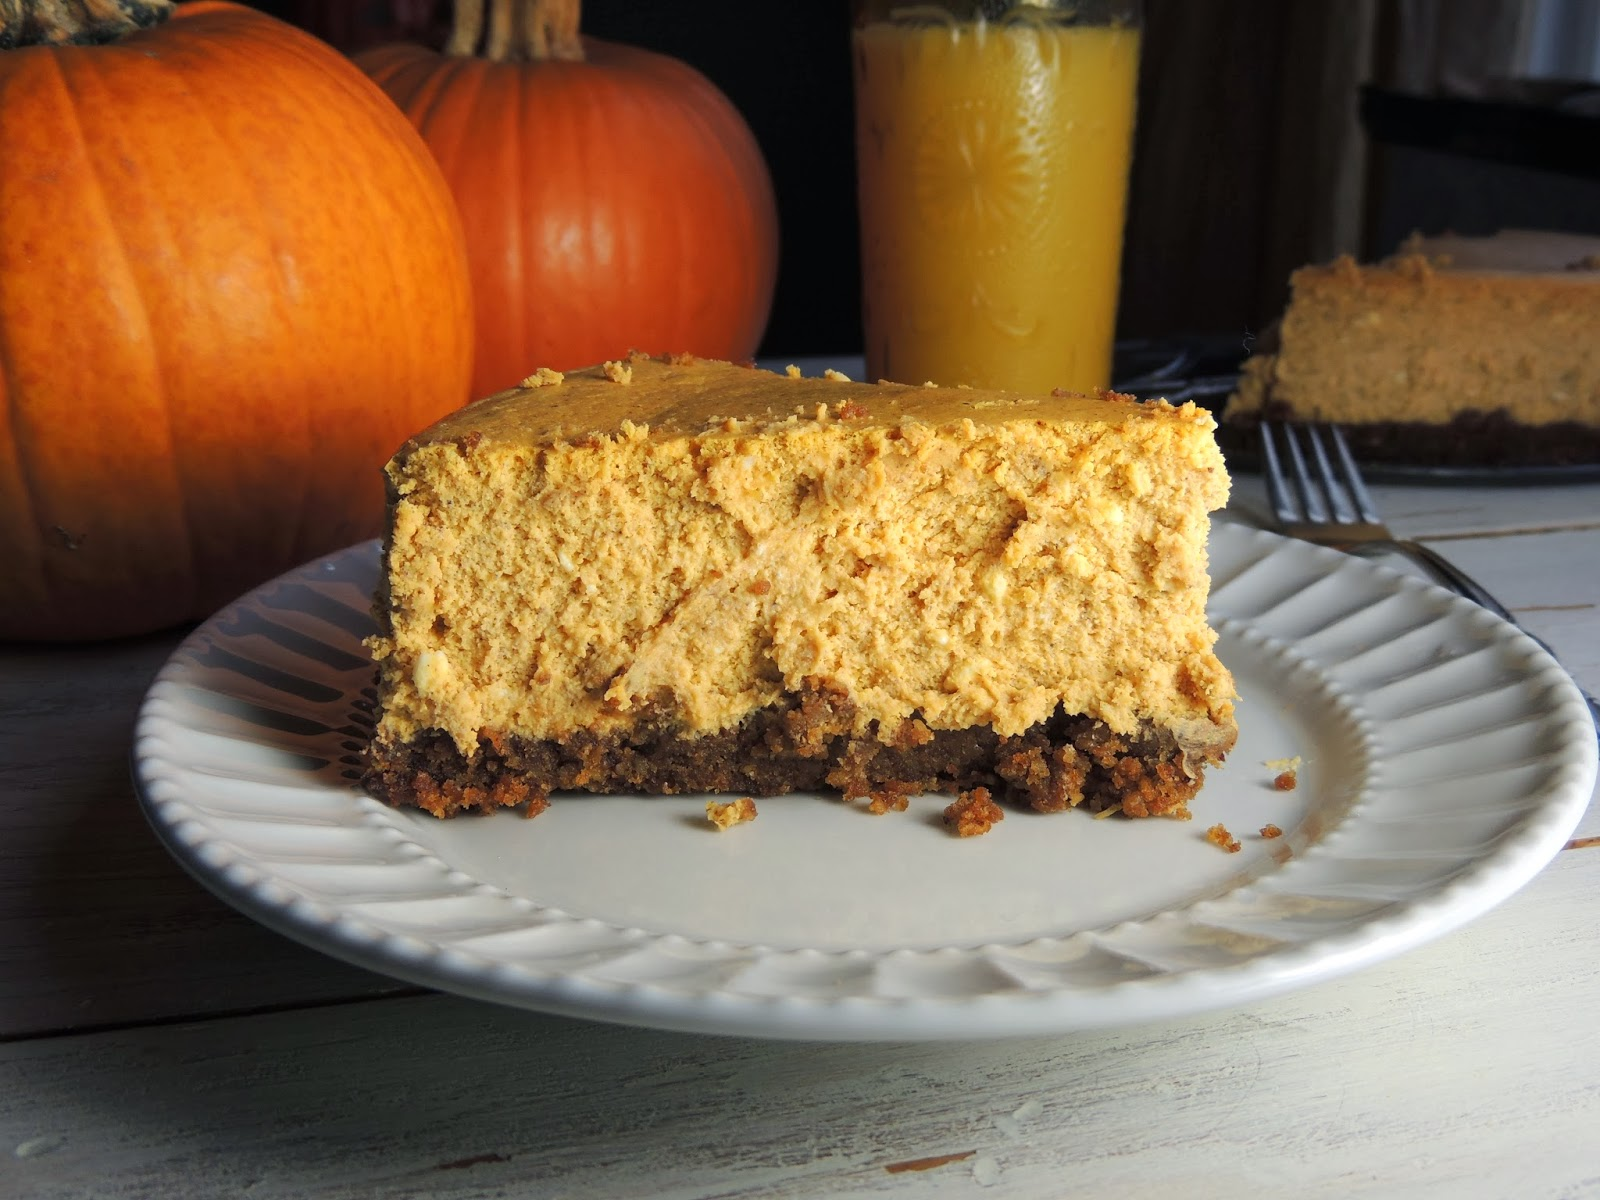 ... cheesecake pumpkin caramel cheesecake pumpkin pecan cheesecake pots